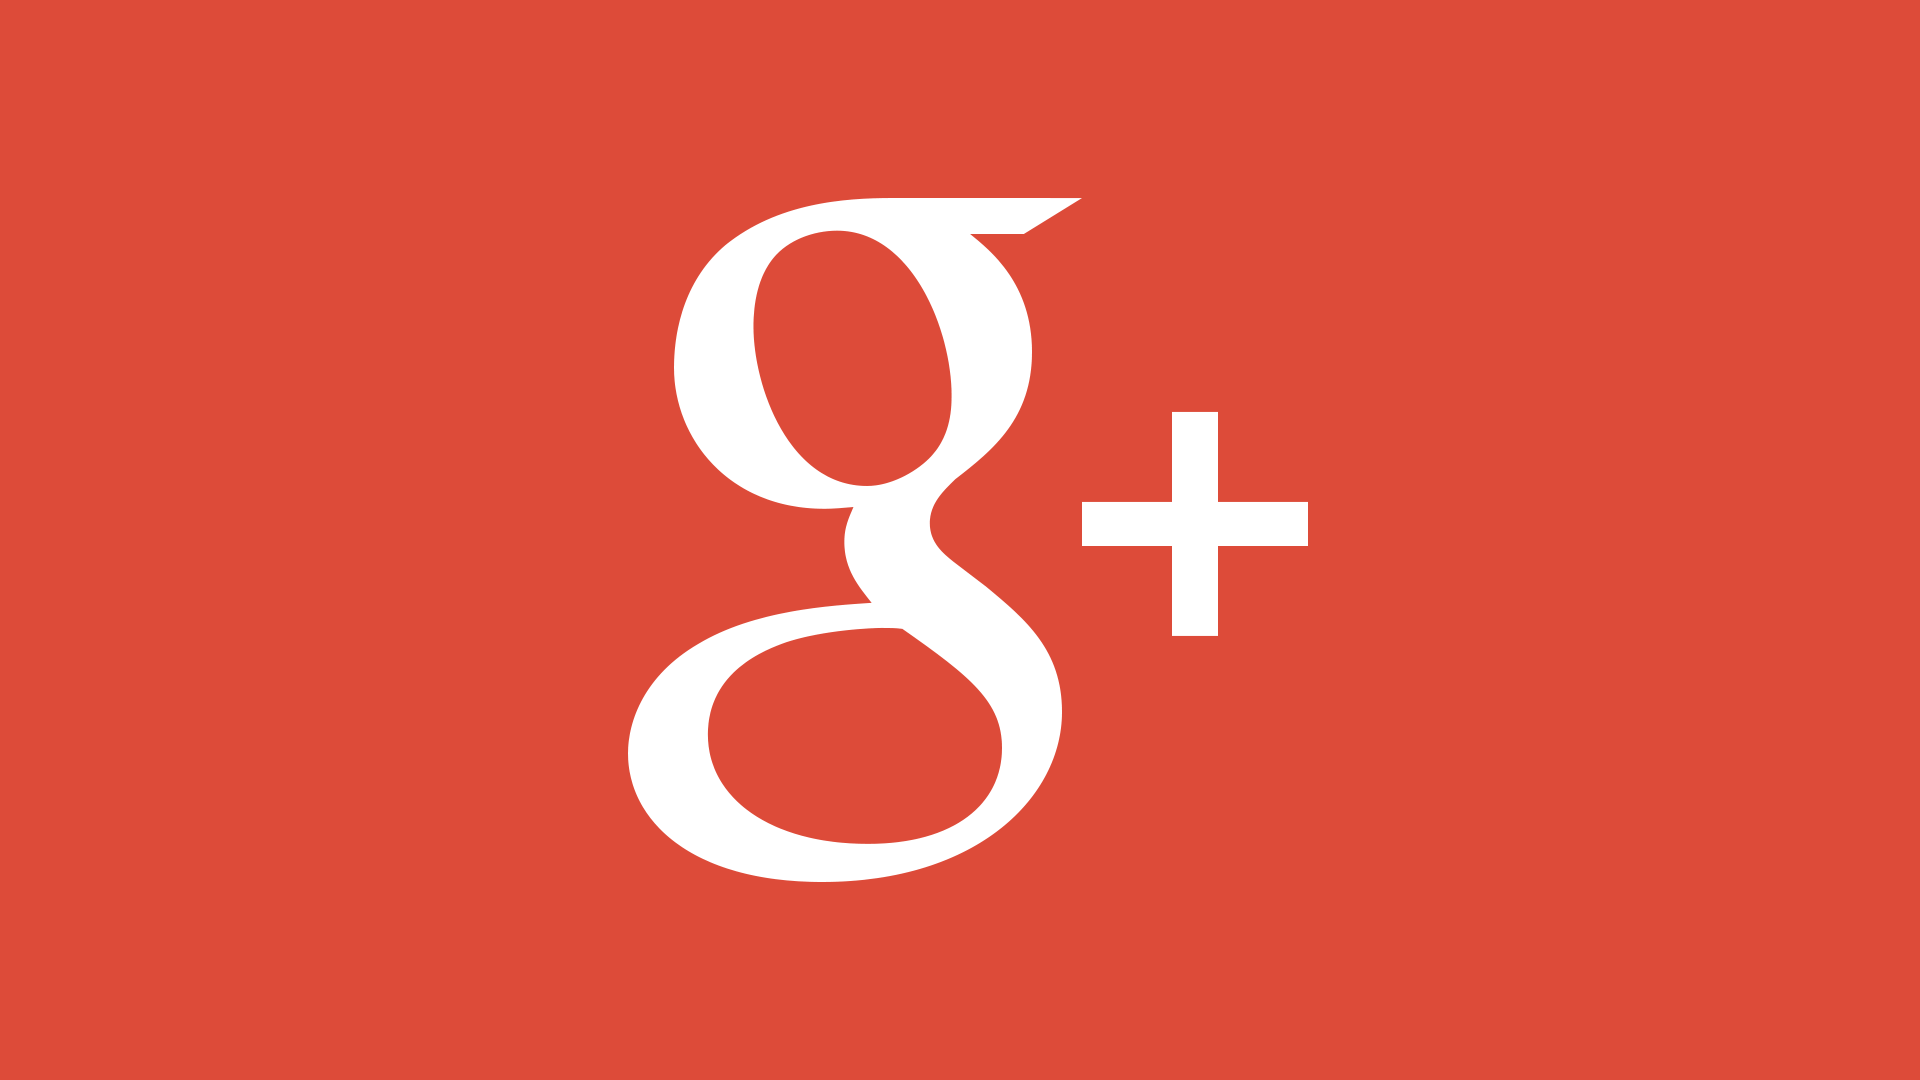 Google's Facebook Competitor, The Google+ Social Network